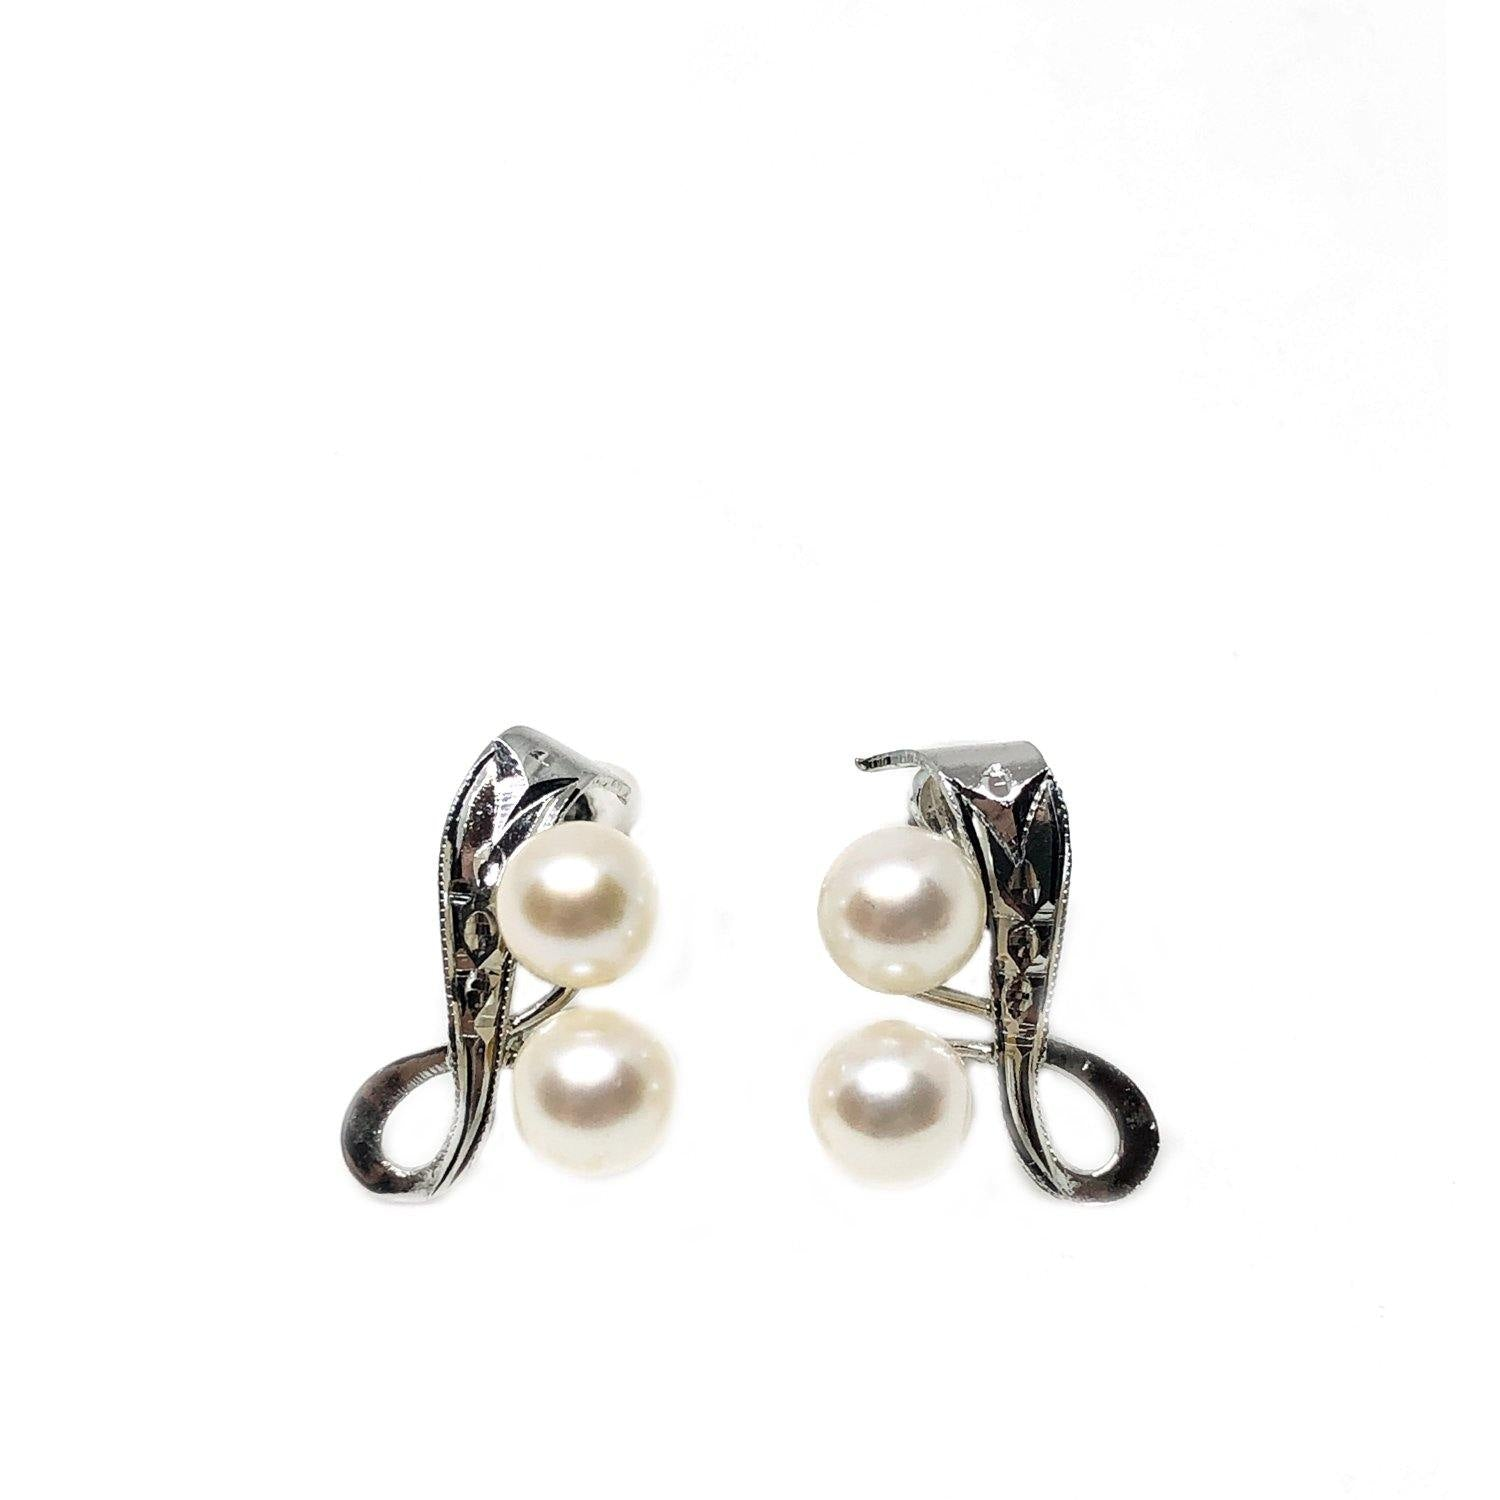 Ribbon Engraved Akoya Saltwater Cultured Pearl Screwback Earrings- Sterling Silver